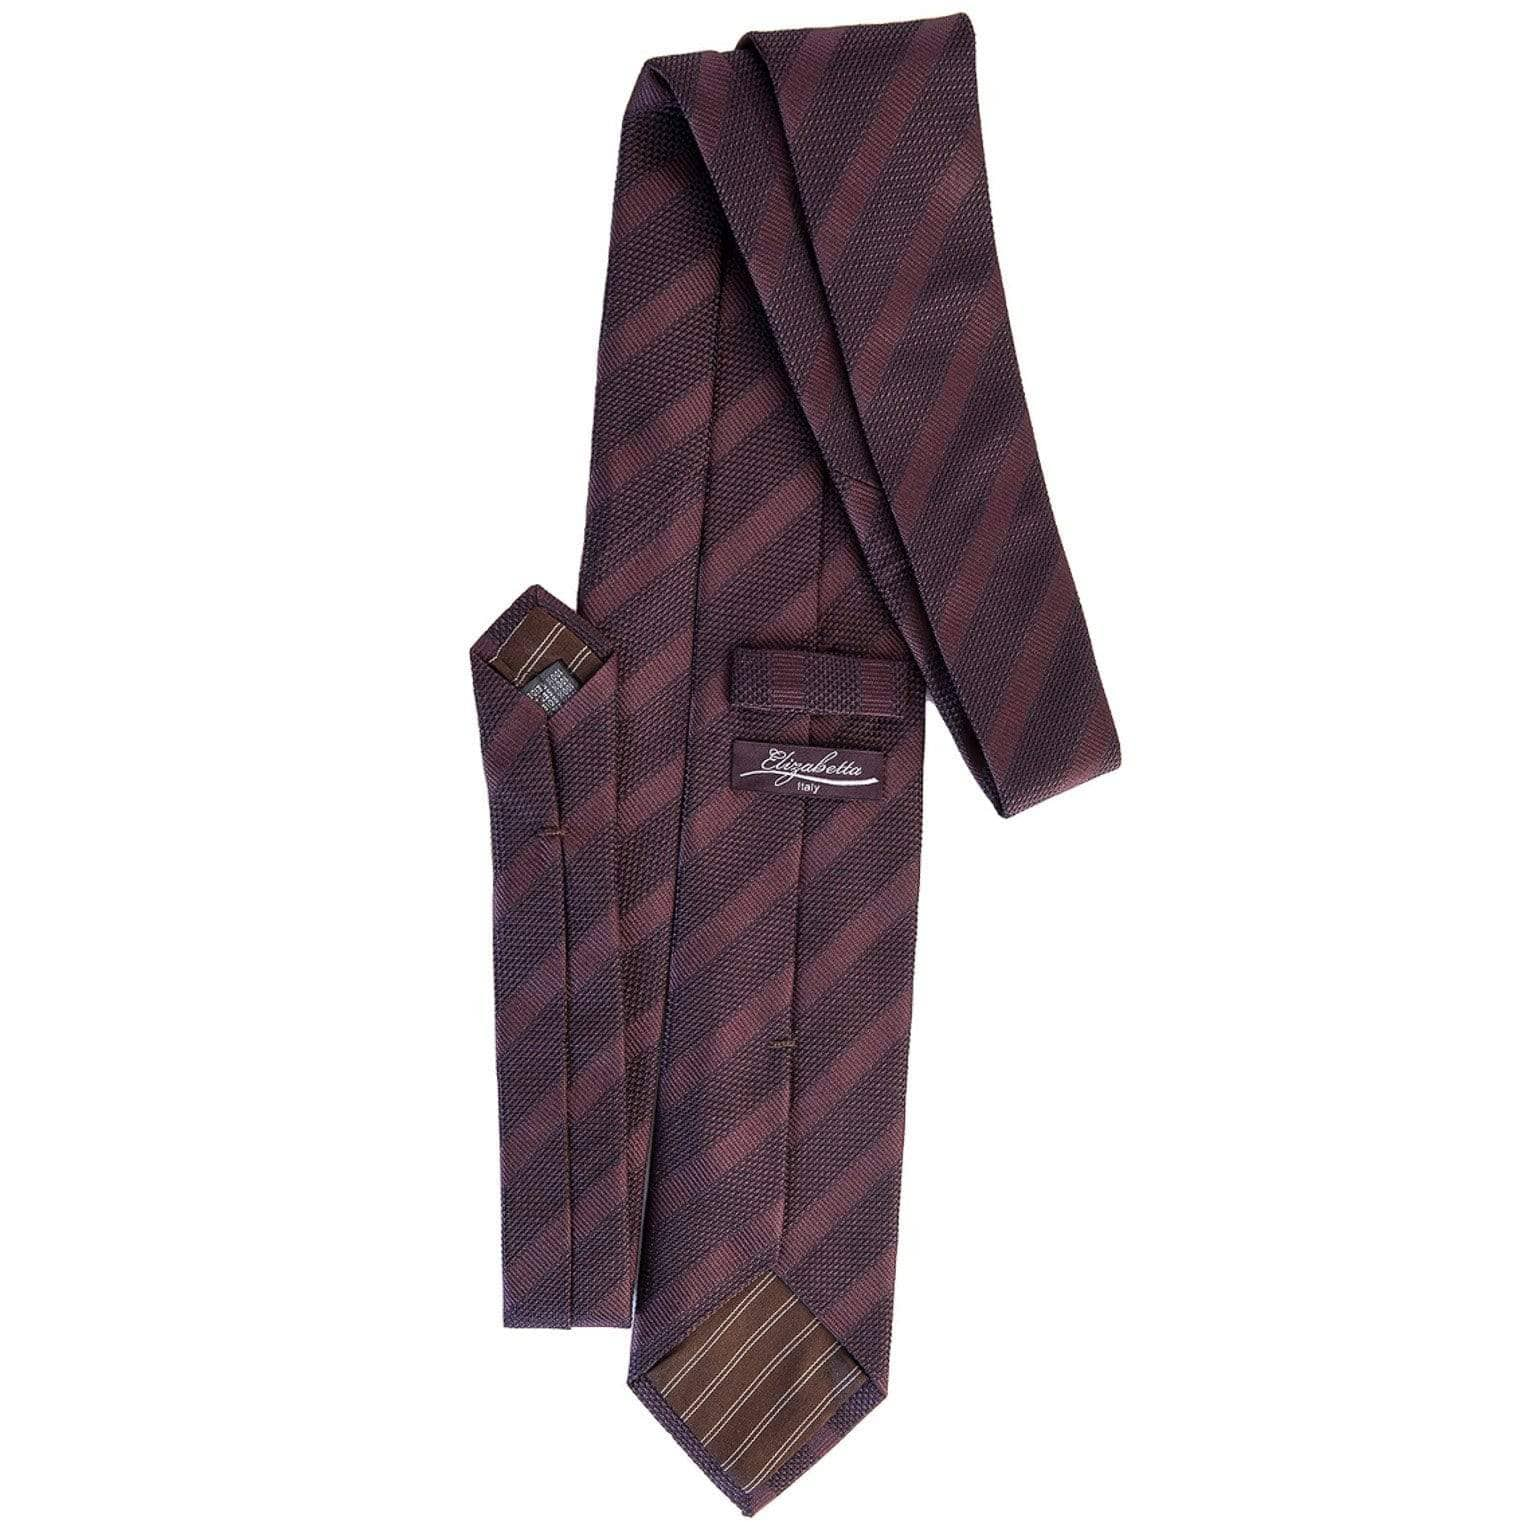 Formal silk wedding tie